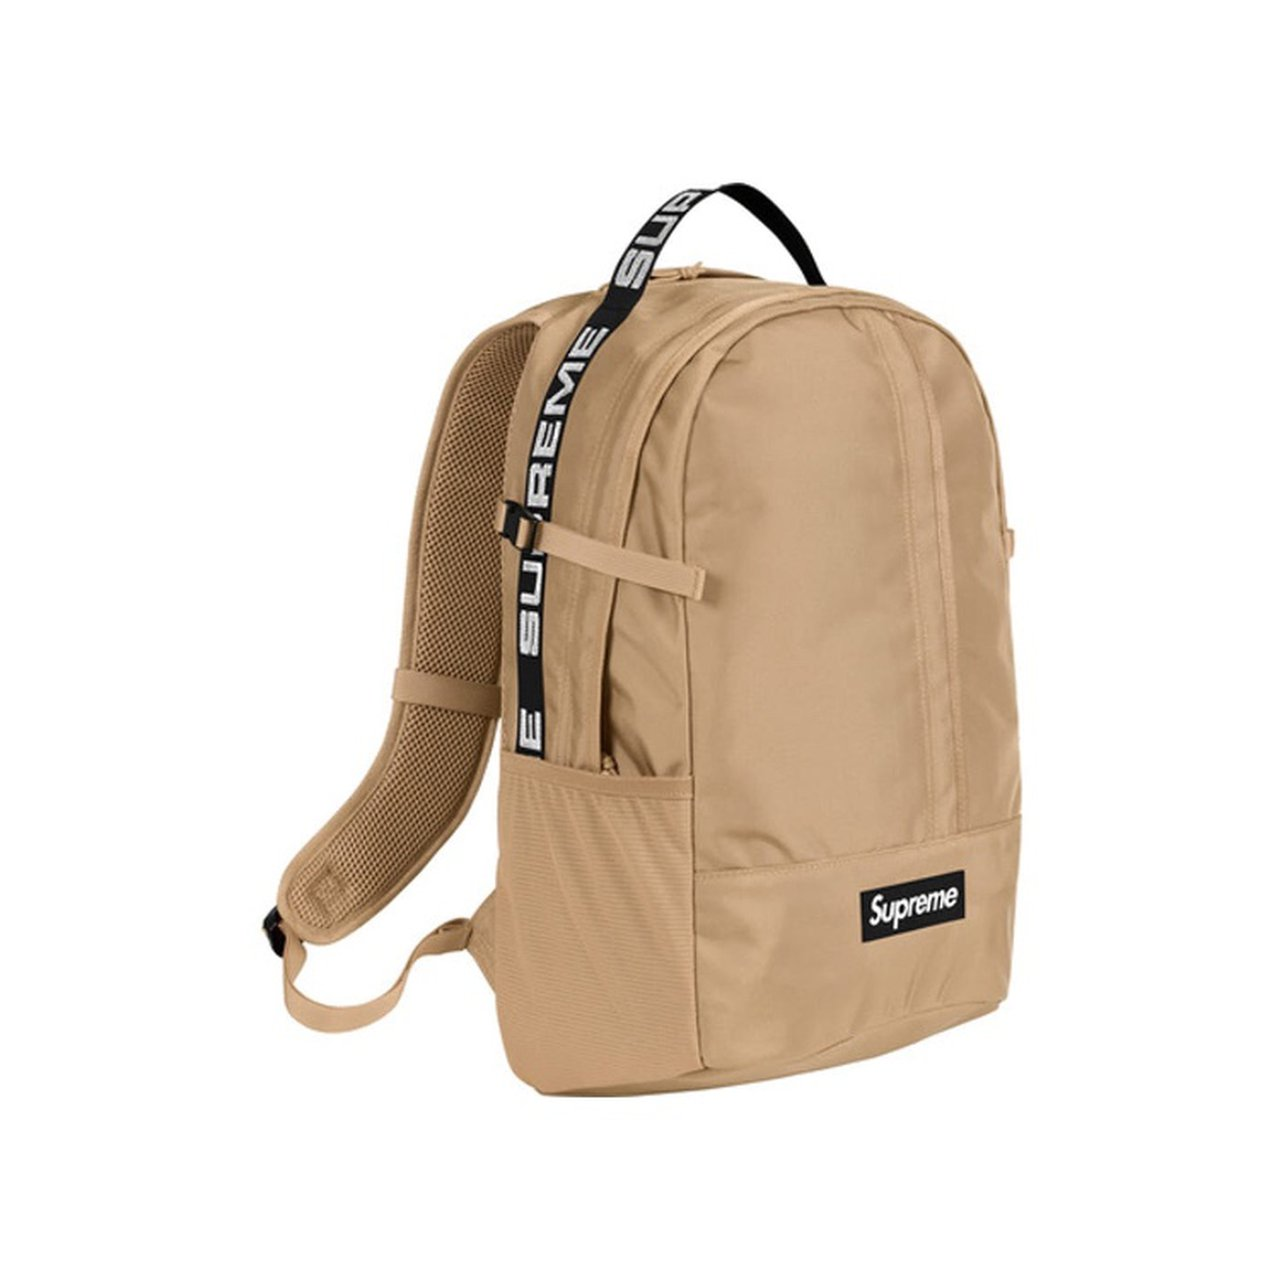 af94615e Red Supreme Backpack Stockx- Fenix Toulouse Handball